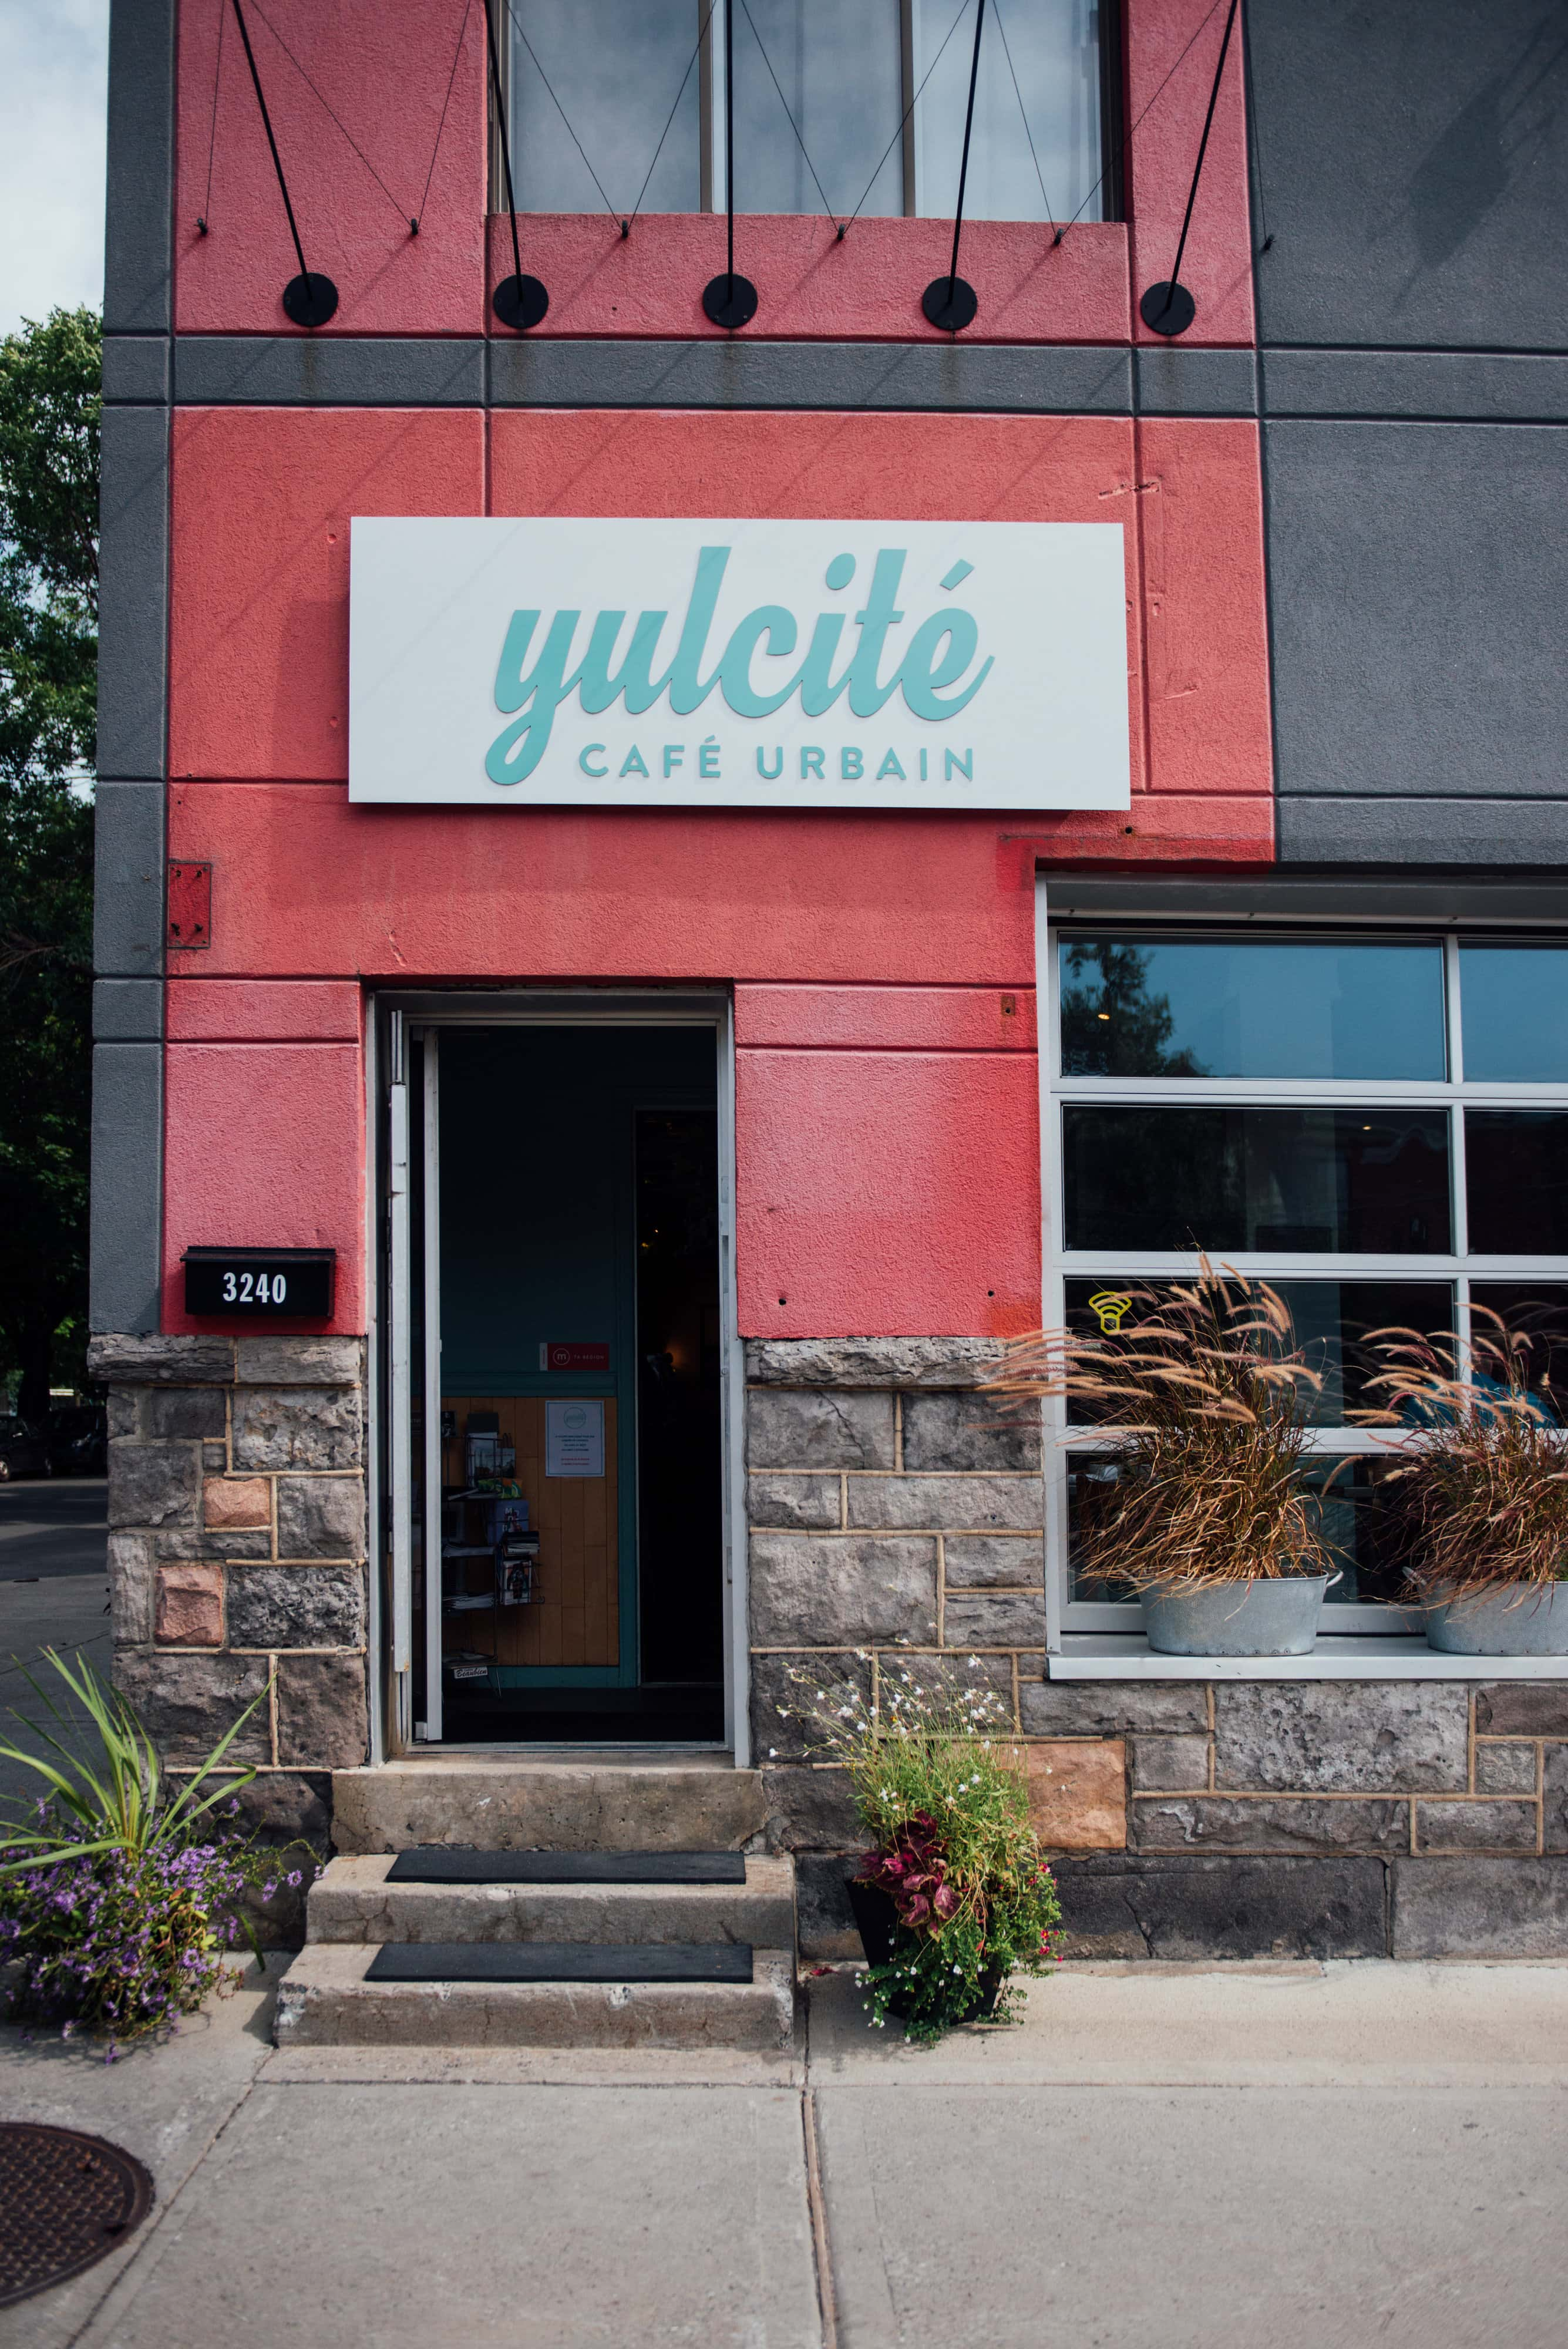 yulcite cafe coffee shop cafe urbain urban cafe shops angus montreal